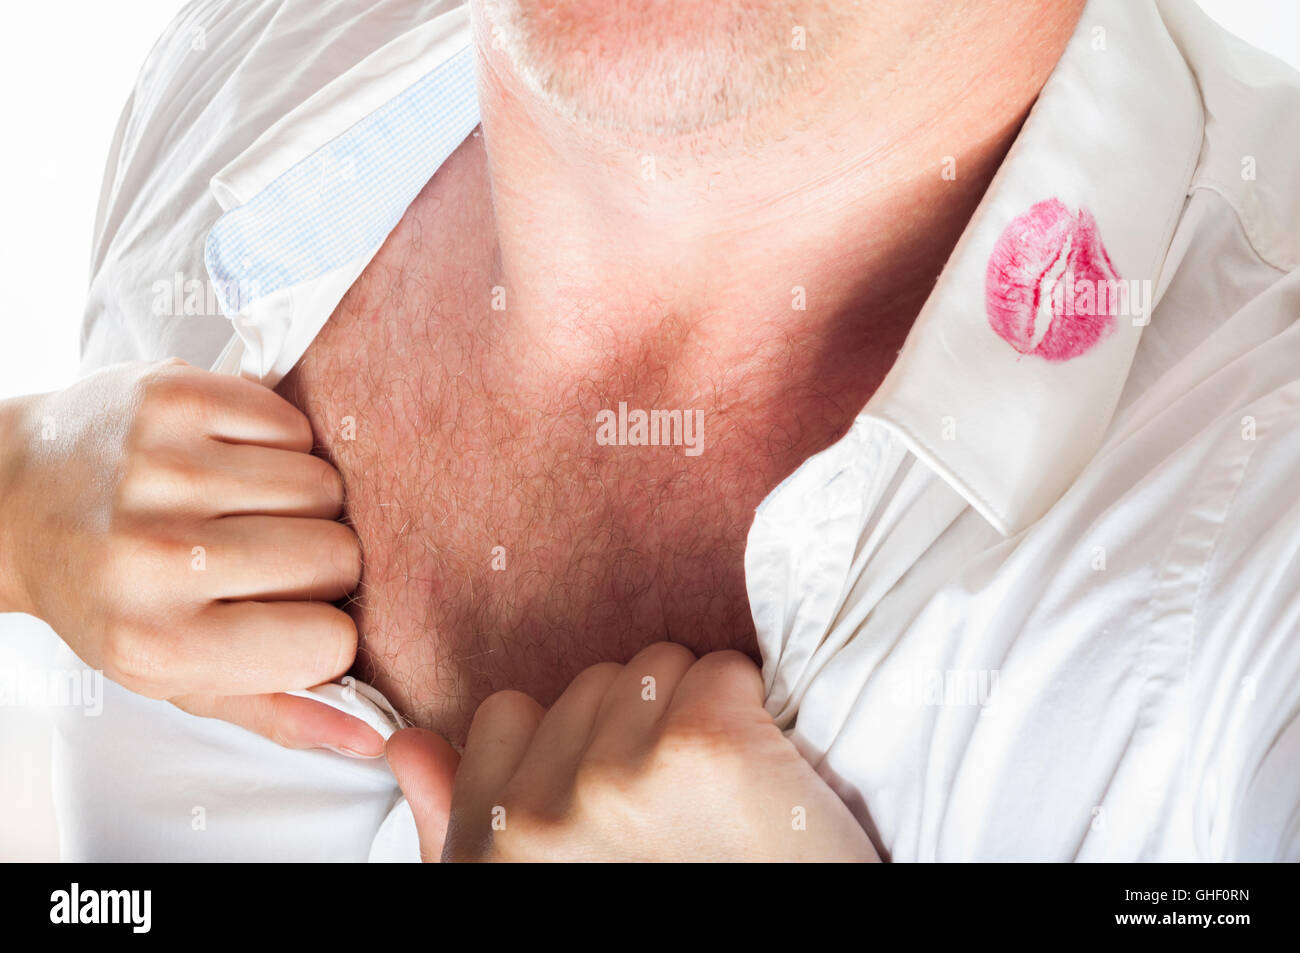 red lipstick on a shirt - Stock Image